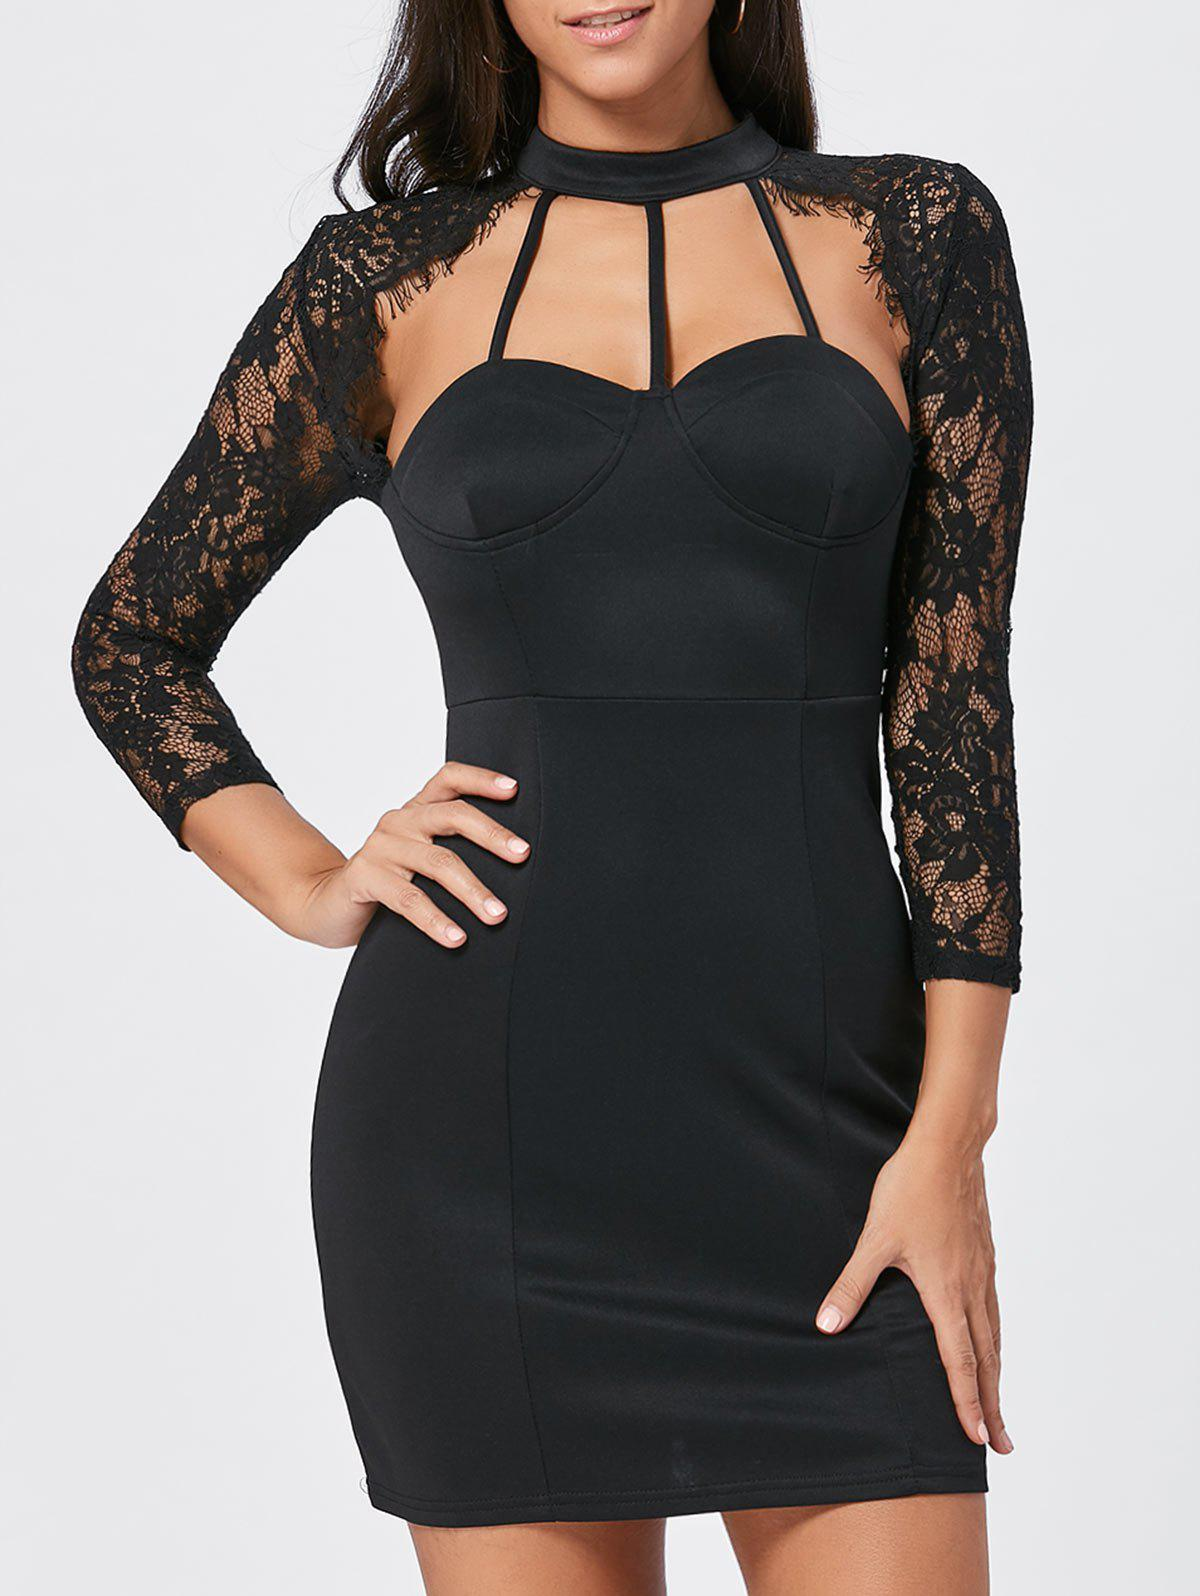 Lace Panel Cut Out Bodycon Dress видеорегистратор svplus svip n304poe